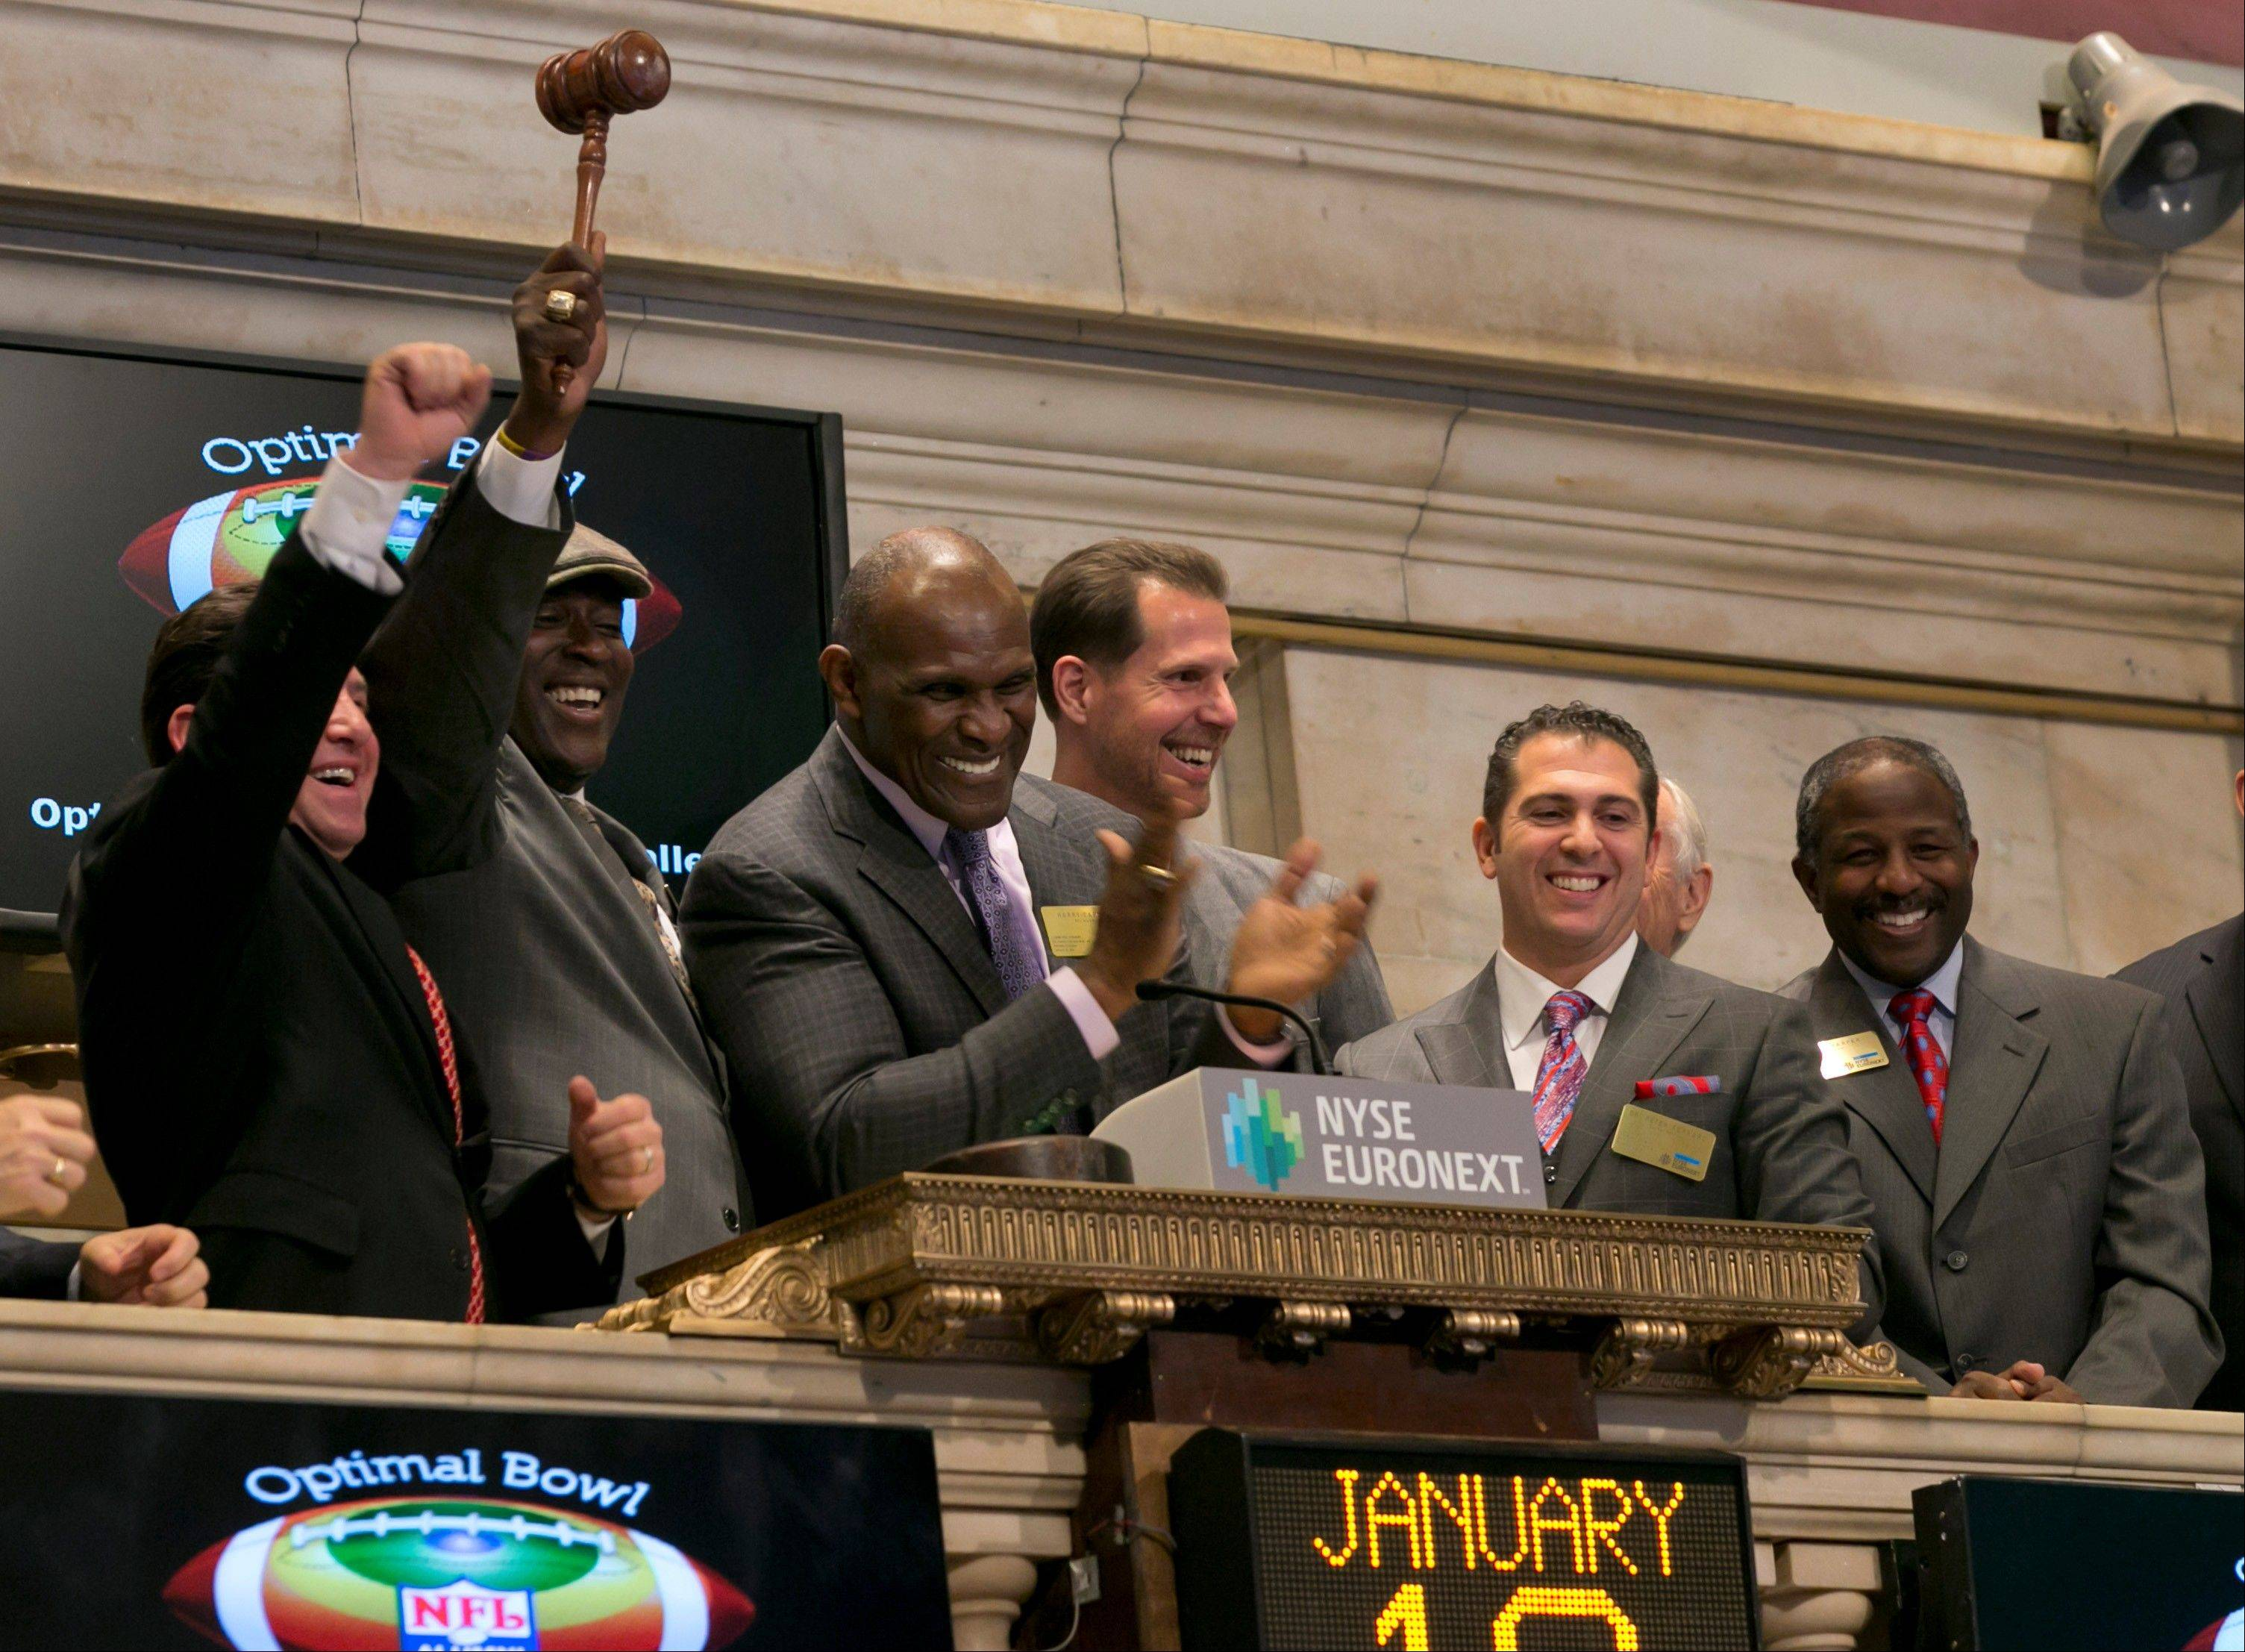 Dr. George Shapiro, former NY Giants Ottis Anderson, Harry Carson and Carl Nelson, with Dr. Peter Ferraro and former NY Jets Bruce Harper, left to right, celebrate the NFL Alumni Optimal Bowl & Wellness Challenge during closing bell ceremonies at the New York Stock Exchange Friday.